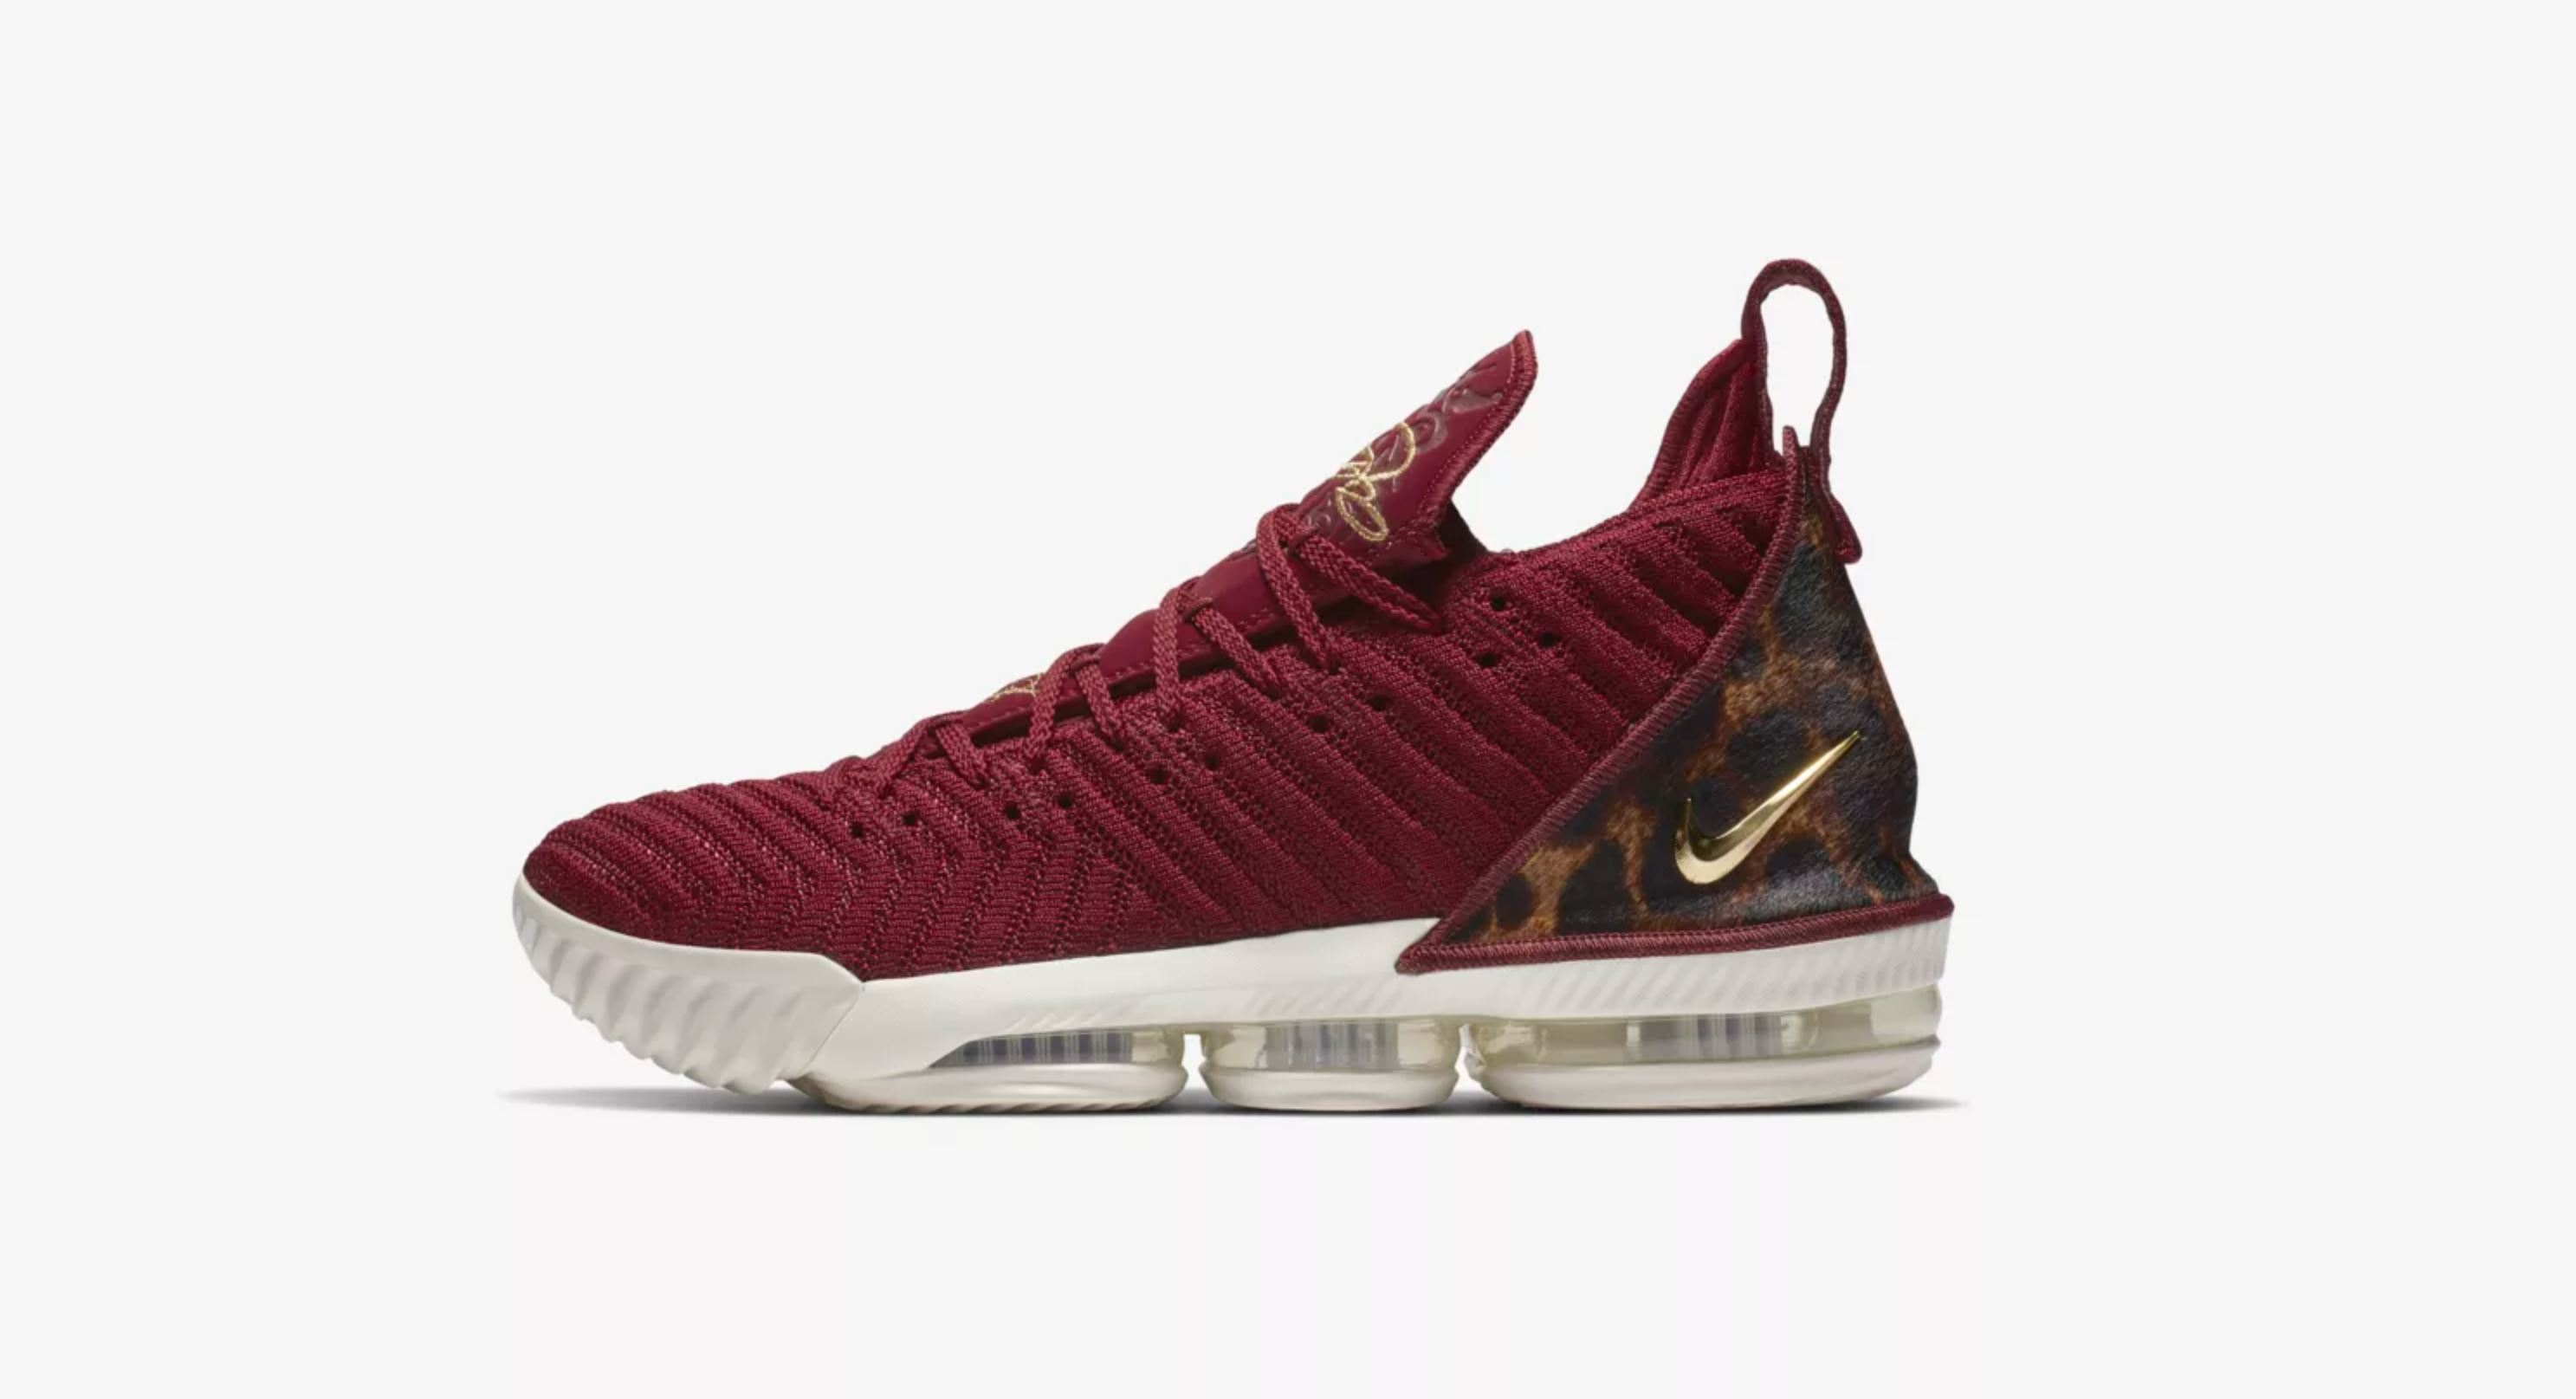 db880d43c2e45 nike lebron 16 king release date lebron james - WearTesters